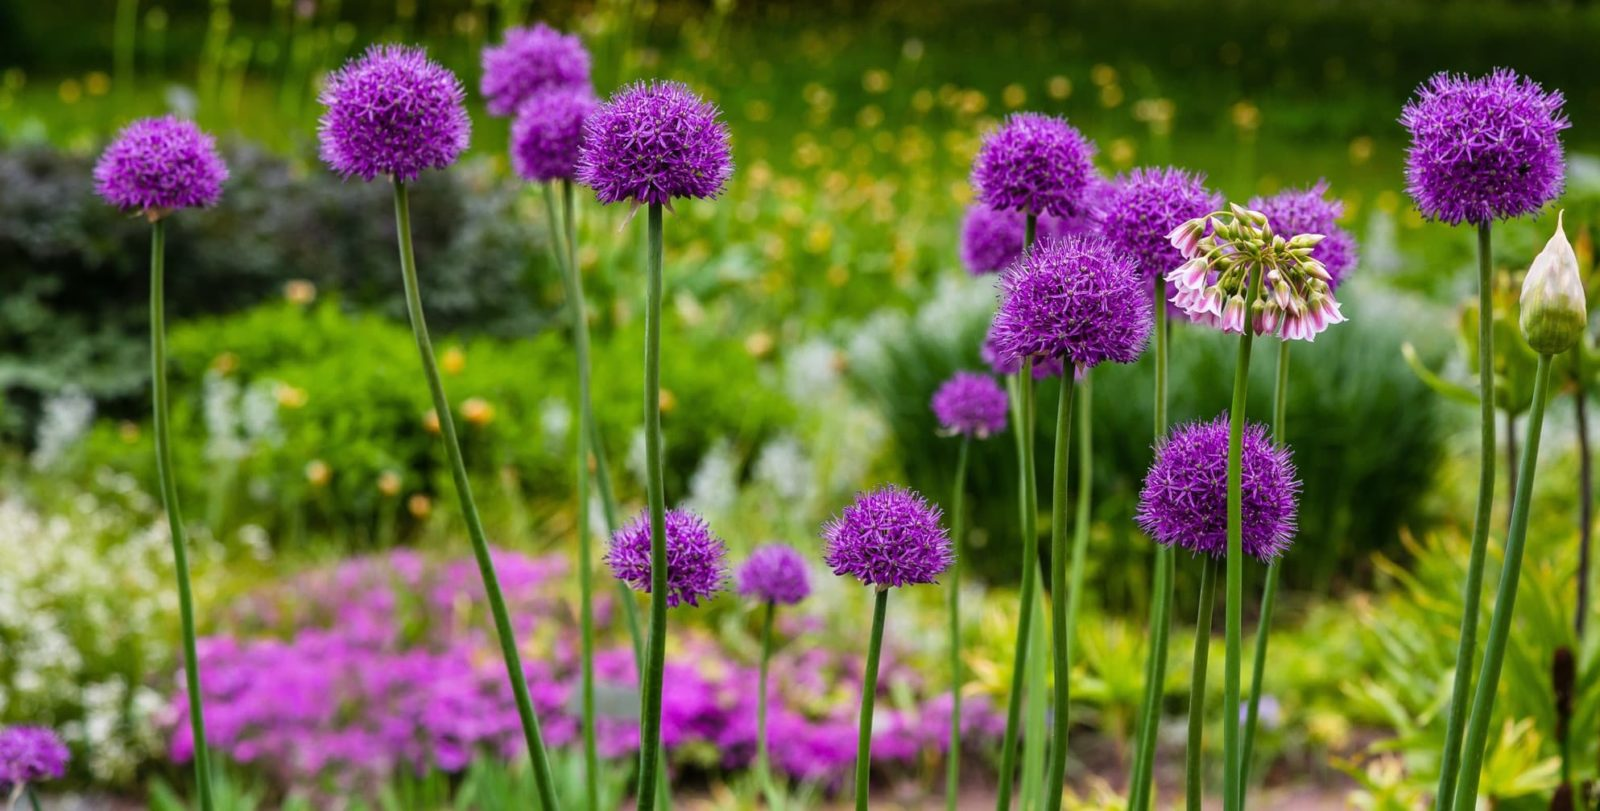 purple allium flowers with greenery in background